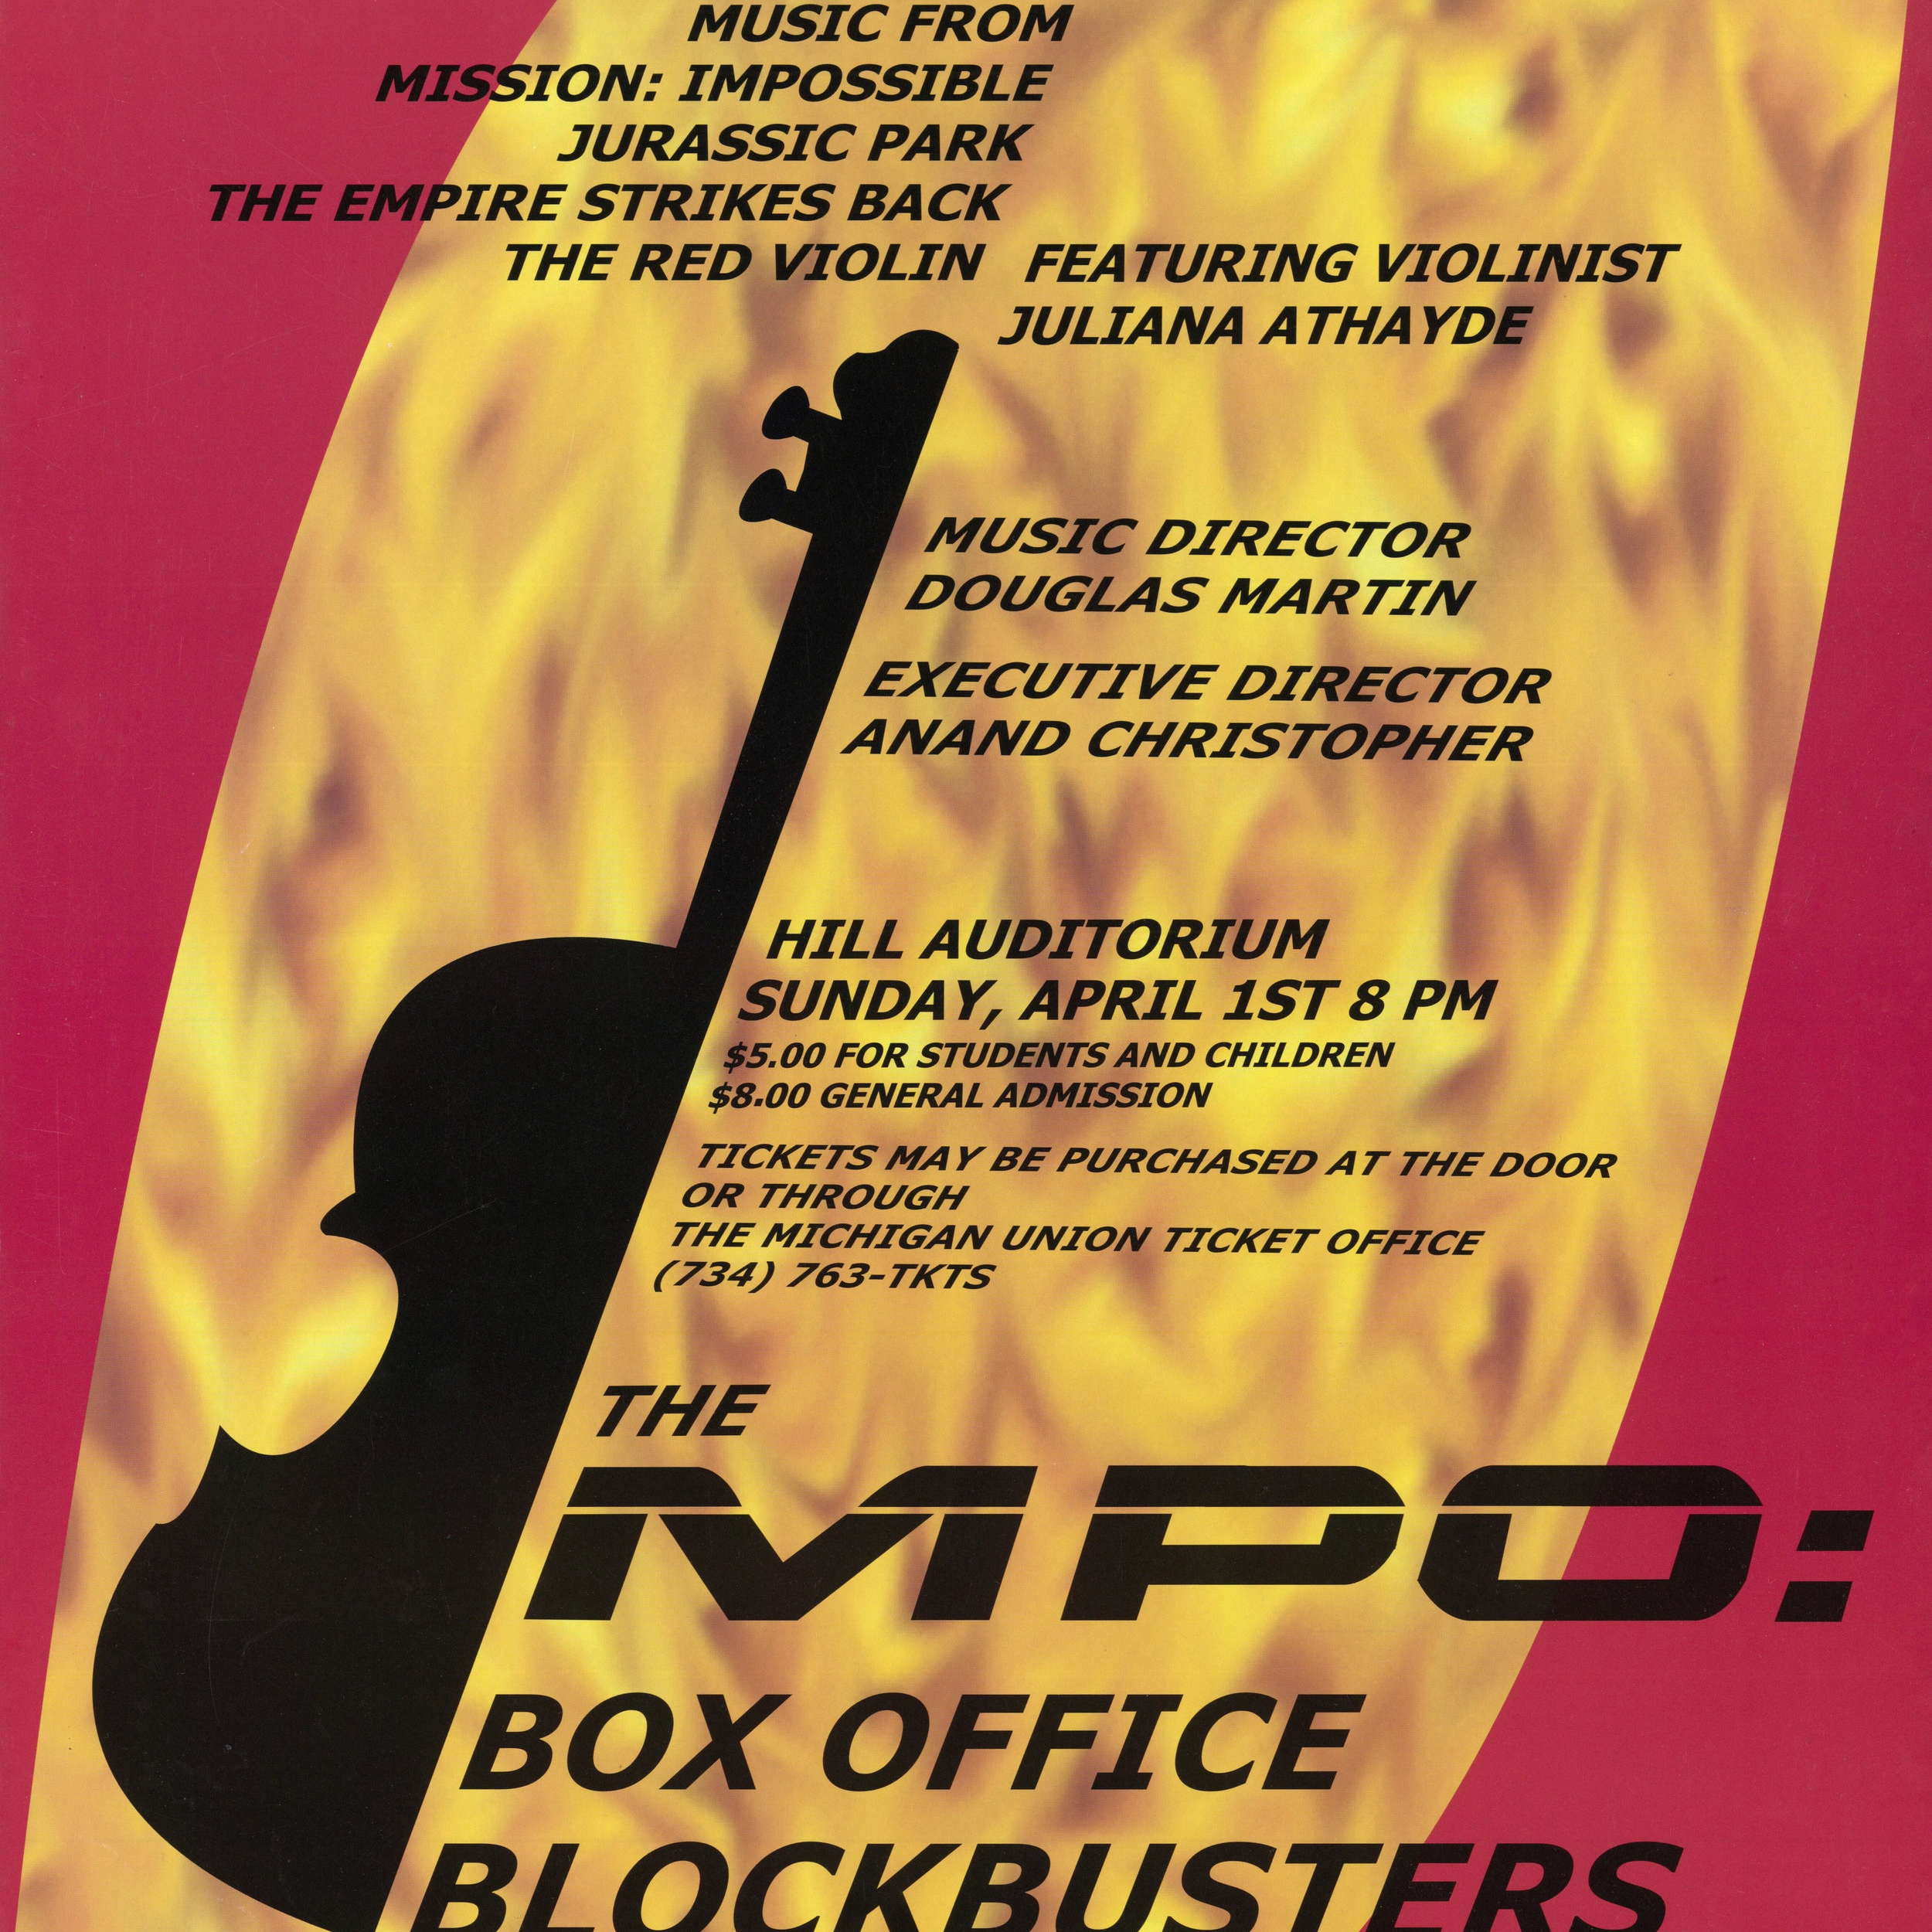 Box Office Blockbusters - Winter 2001